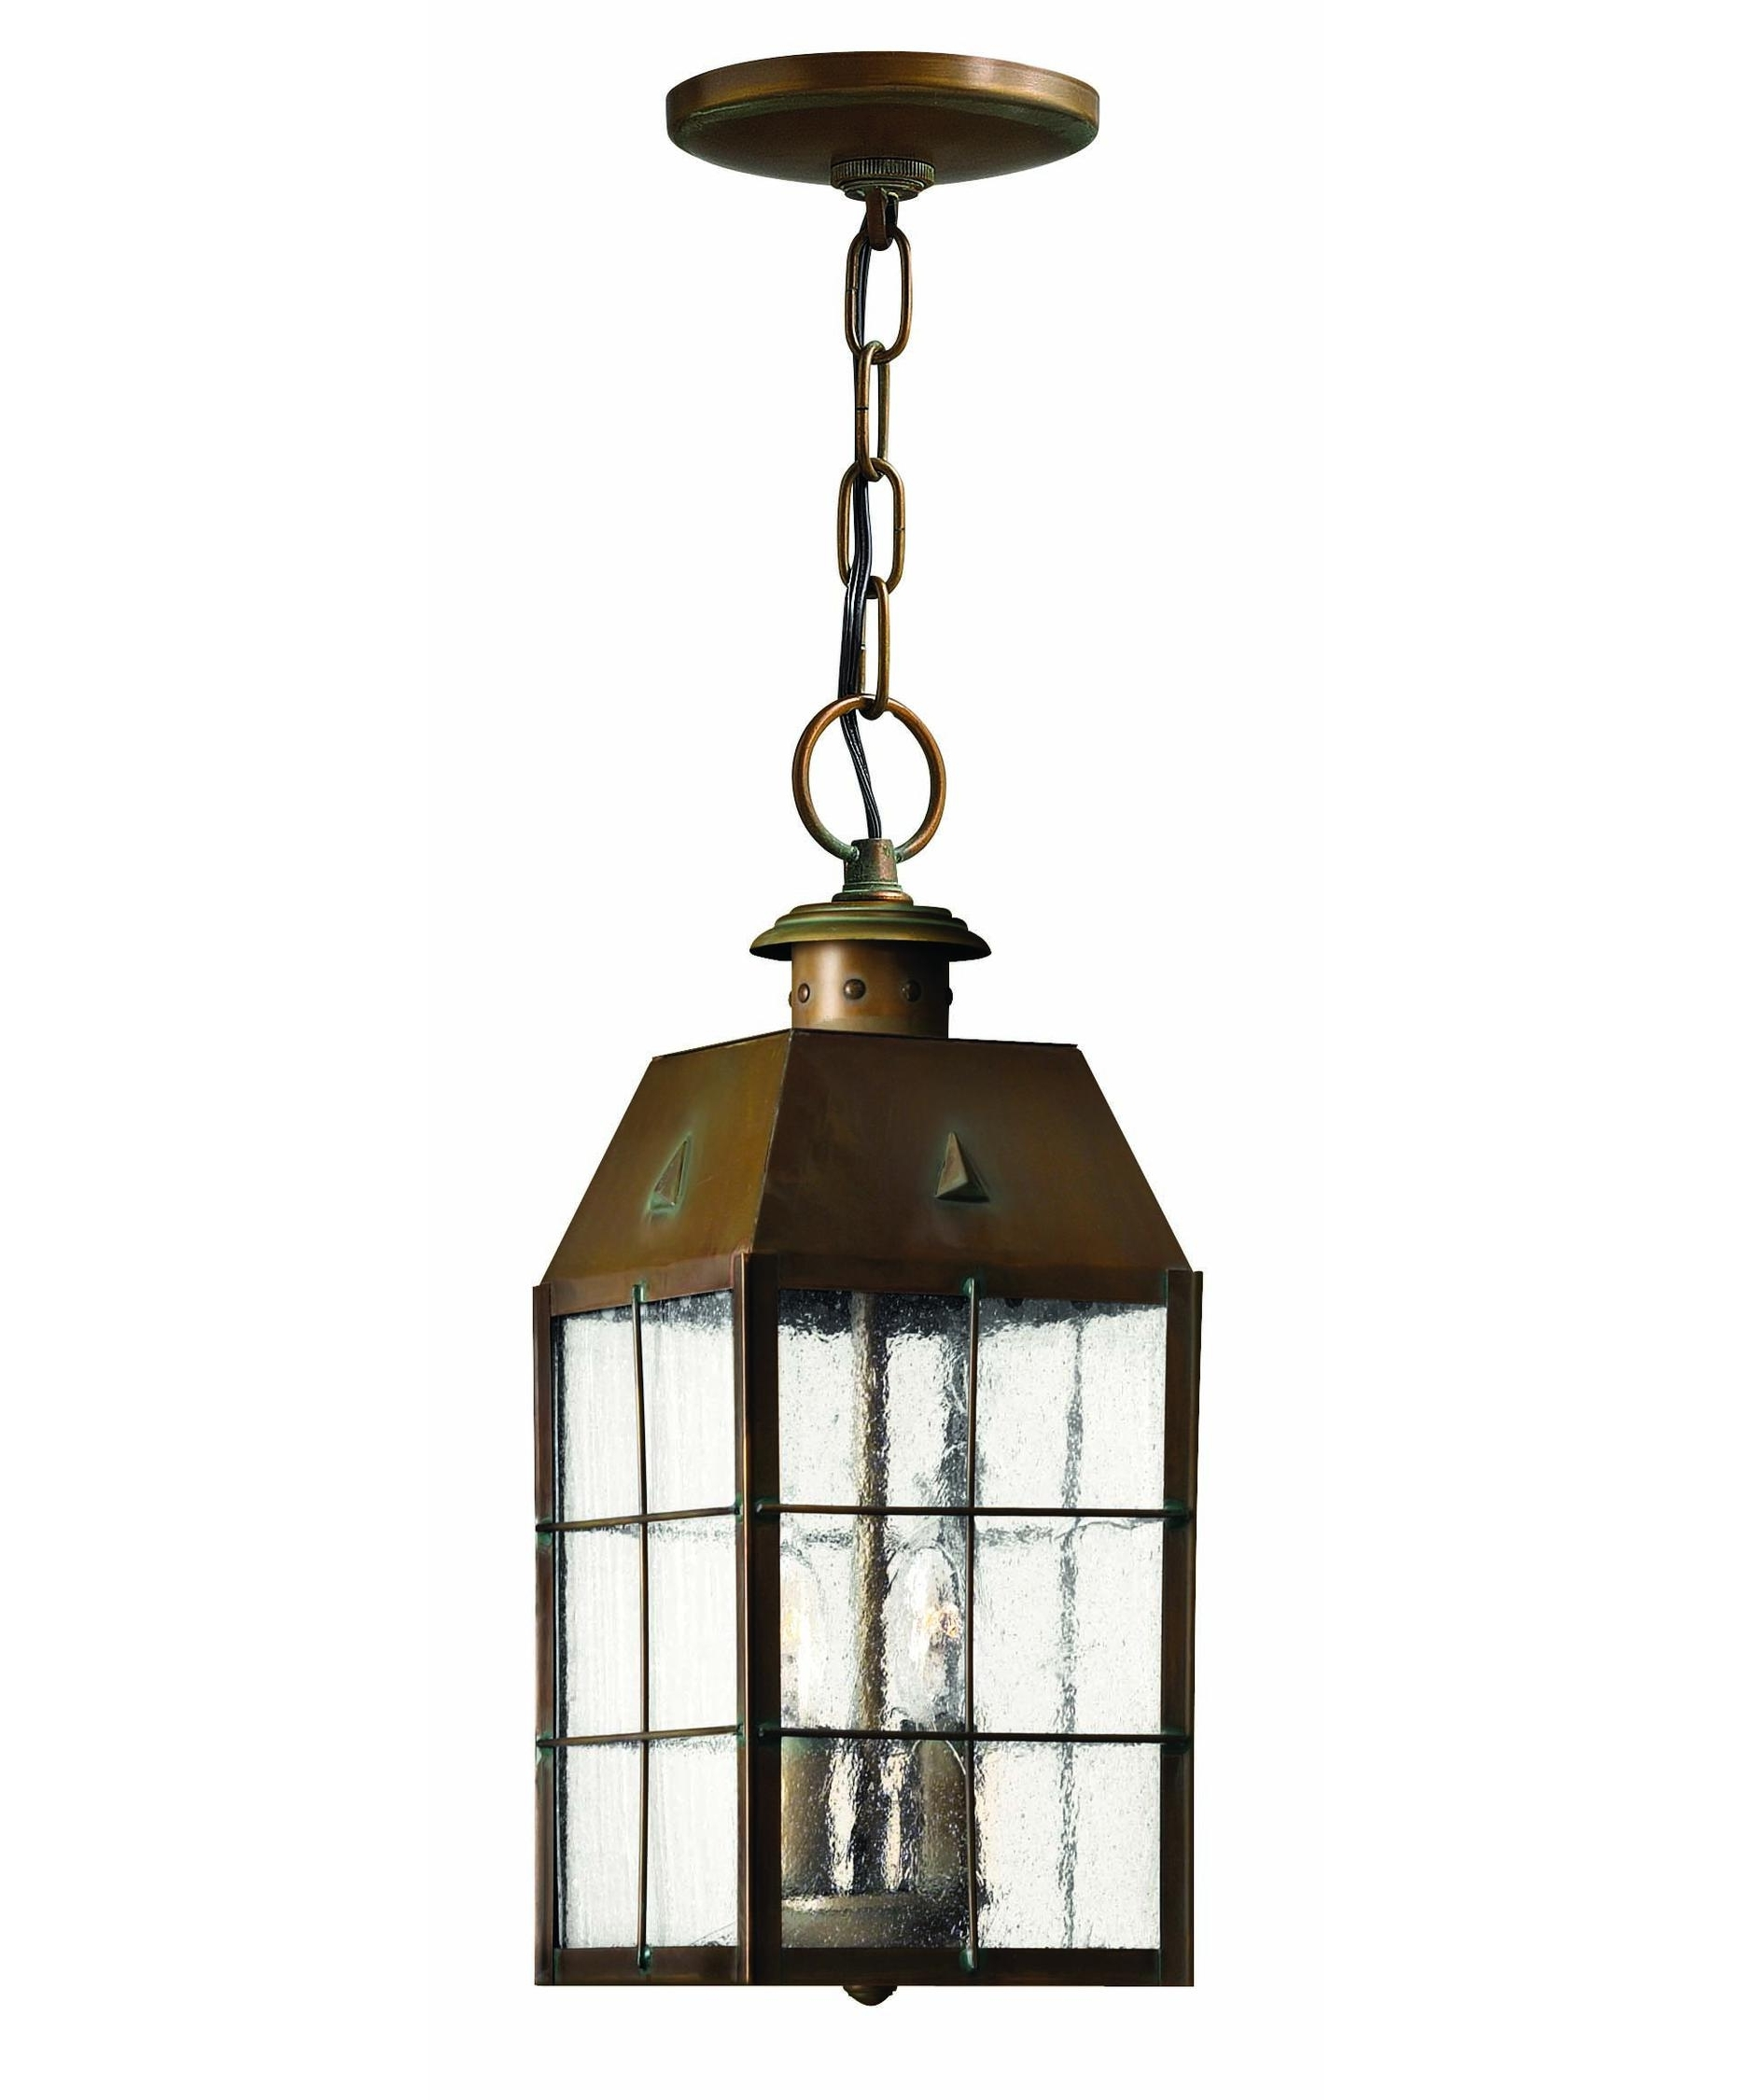 Widely Used Hinkley Lighting 2372 Nantucket 6 Inch Wide 2 Light Outdoor Hanging Within Nantucket Outdoor Lanterns (View 19 of 20)